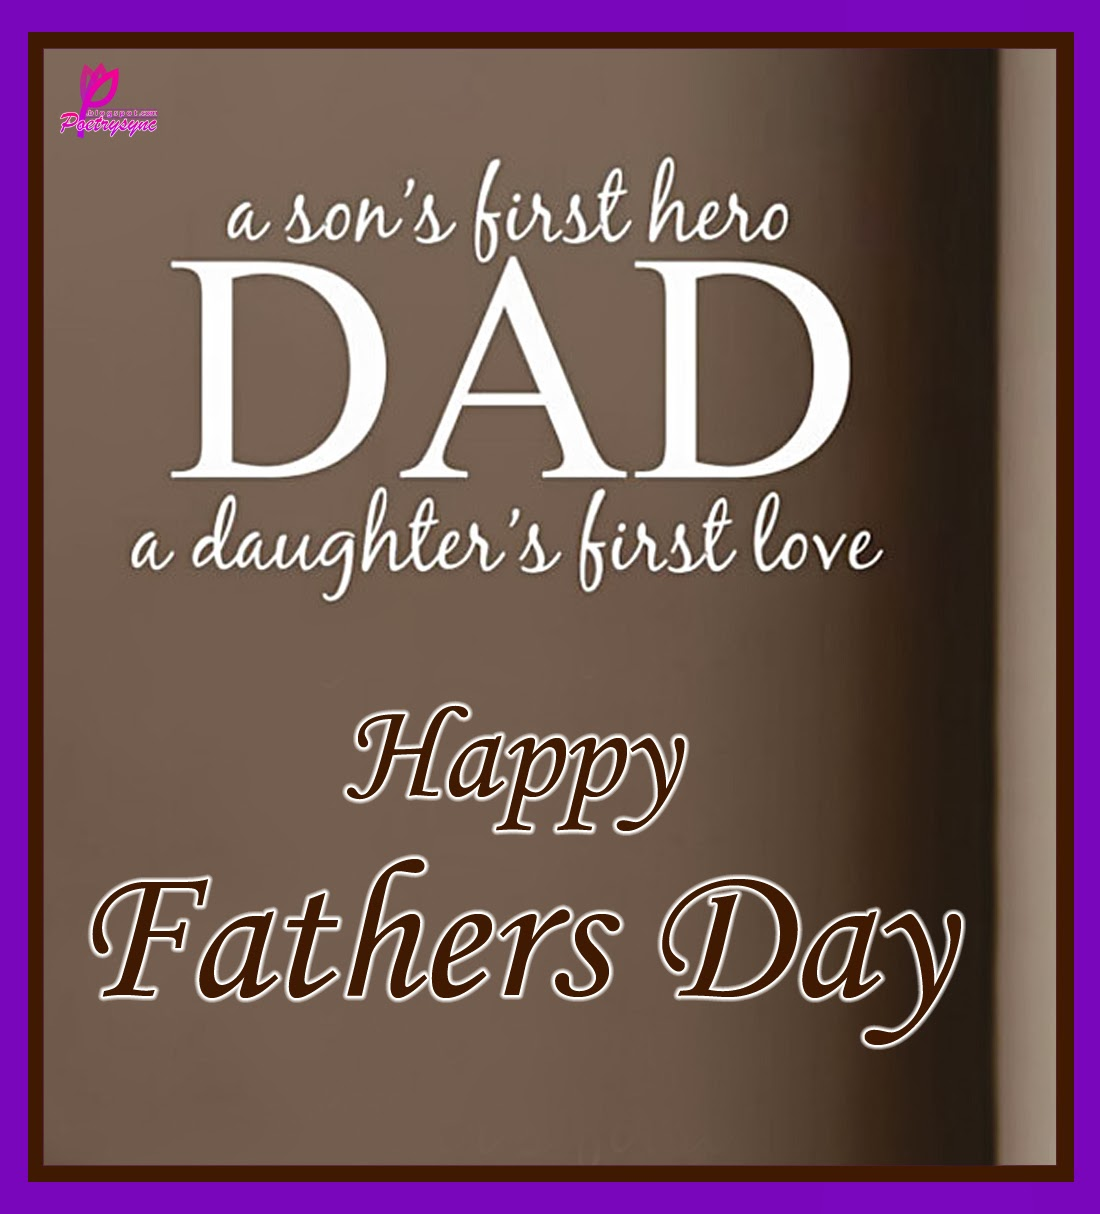 Fathers Day Quotes Happy* Fathers Day Quotes Famous Inspirational Fathers Day